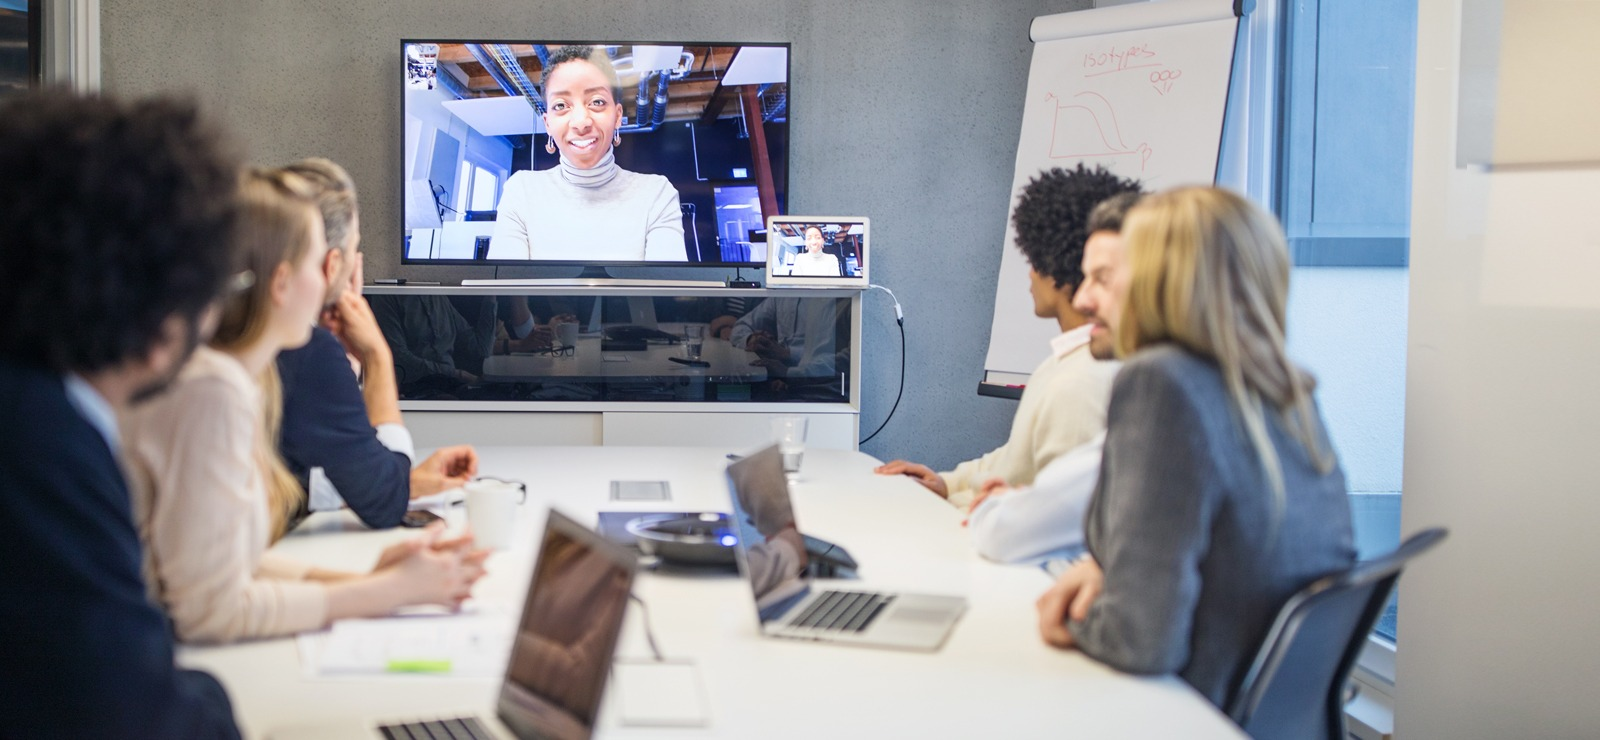 Employees during a video conference